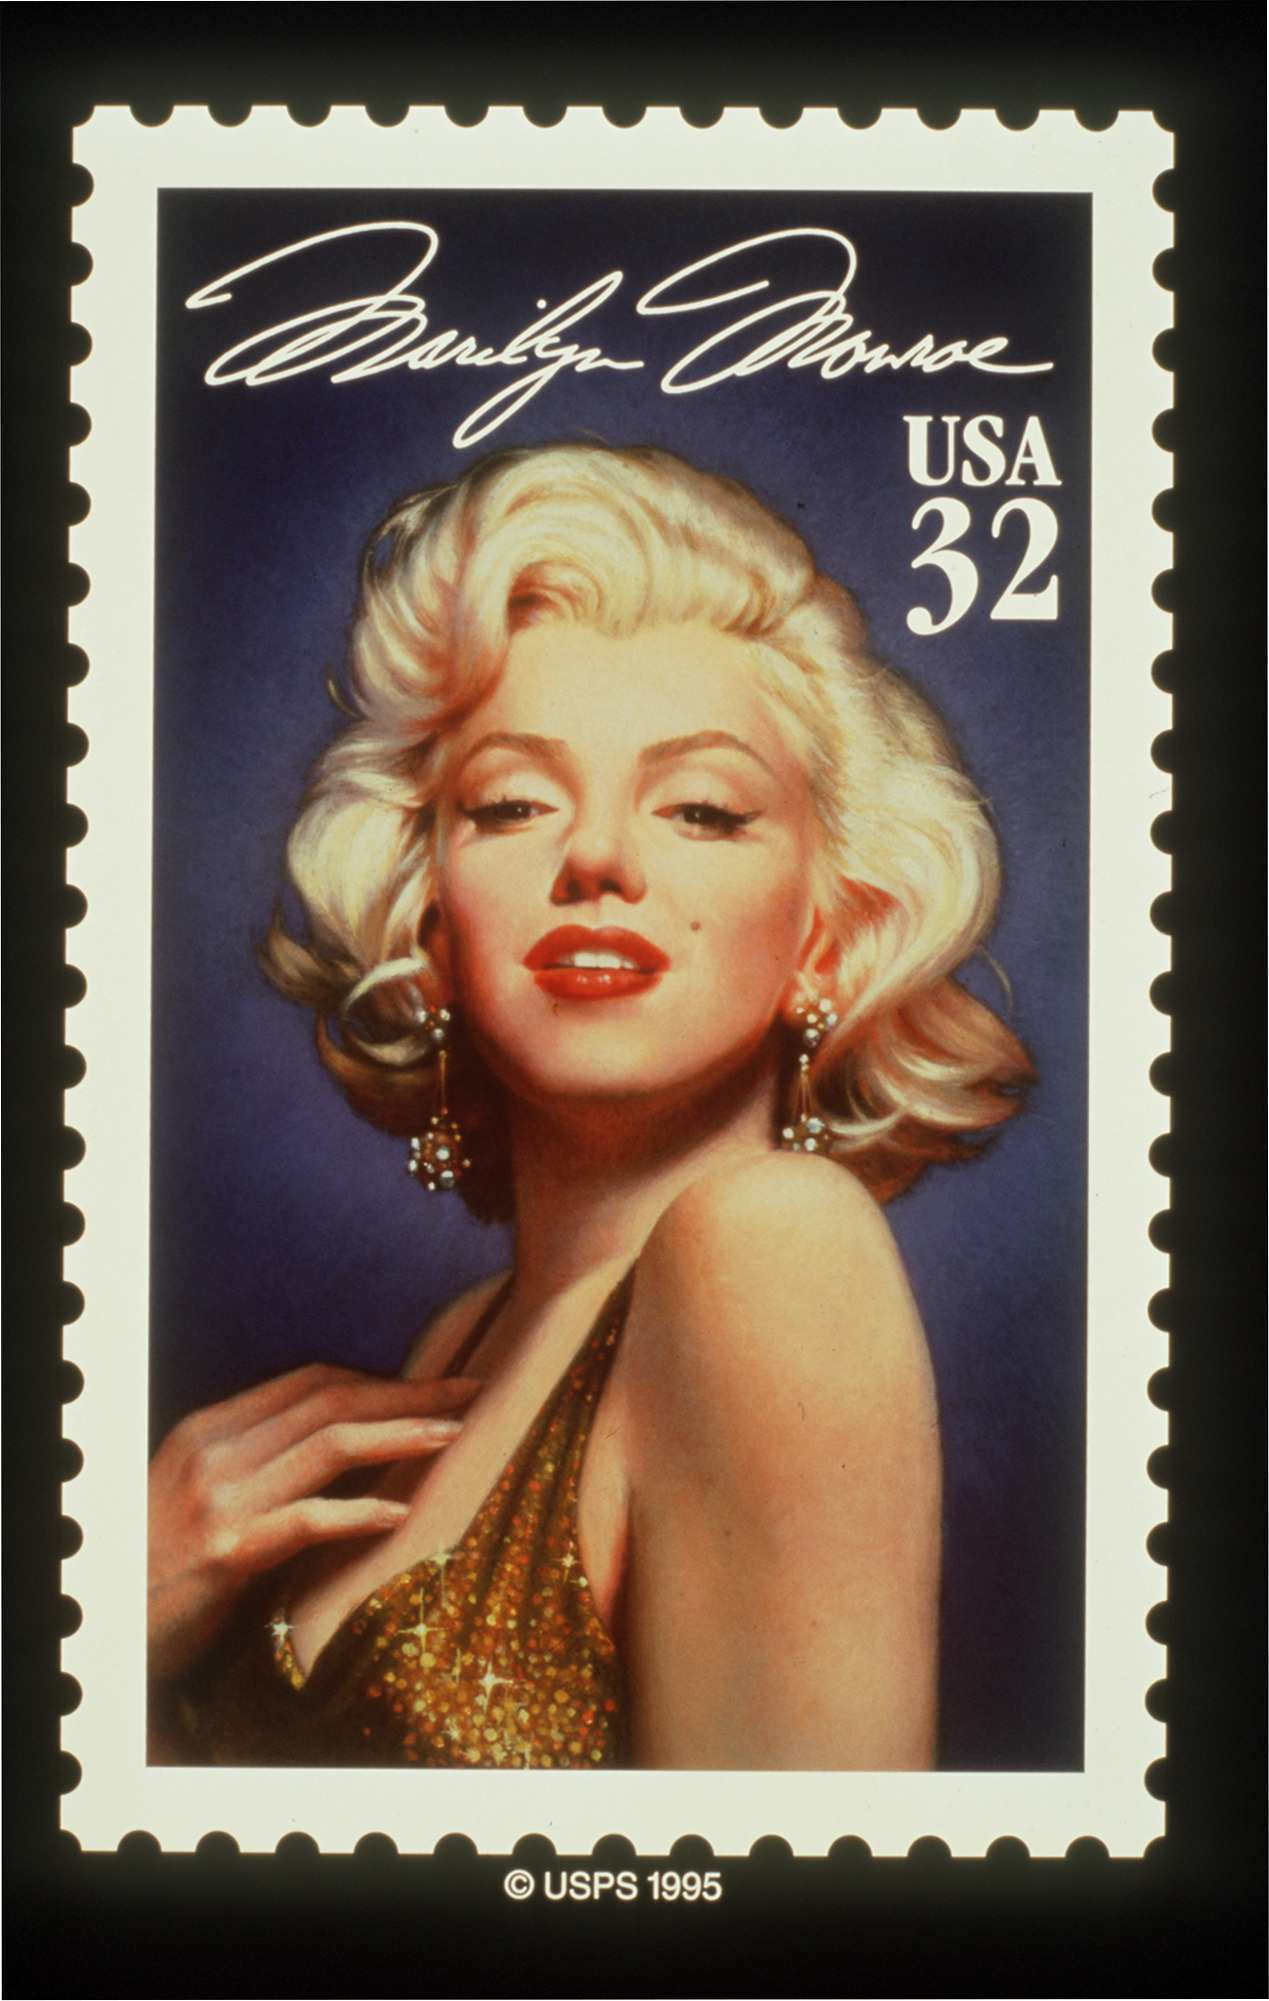 marilyn monroe impact on popular culture August 5, 2012 marks half a century since marilyn monroe died such is her impact on our lives, our aesthetics and popular culture that it's impossible to imagine a world without monroe and it is .